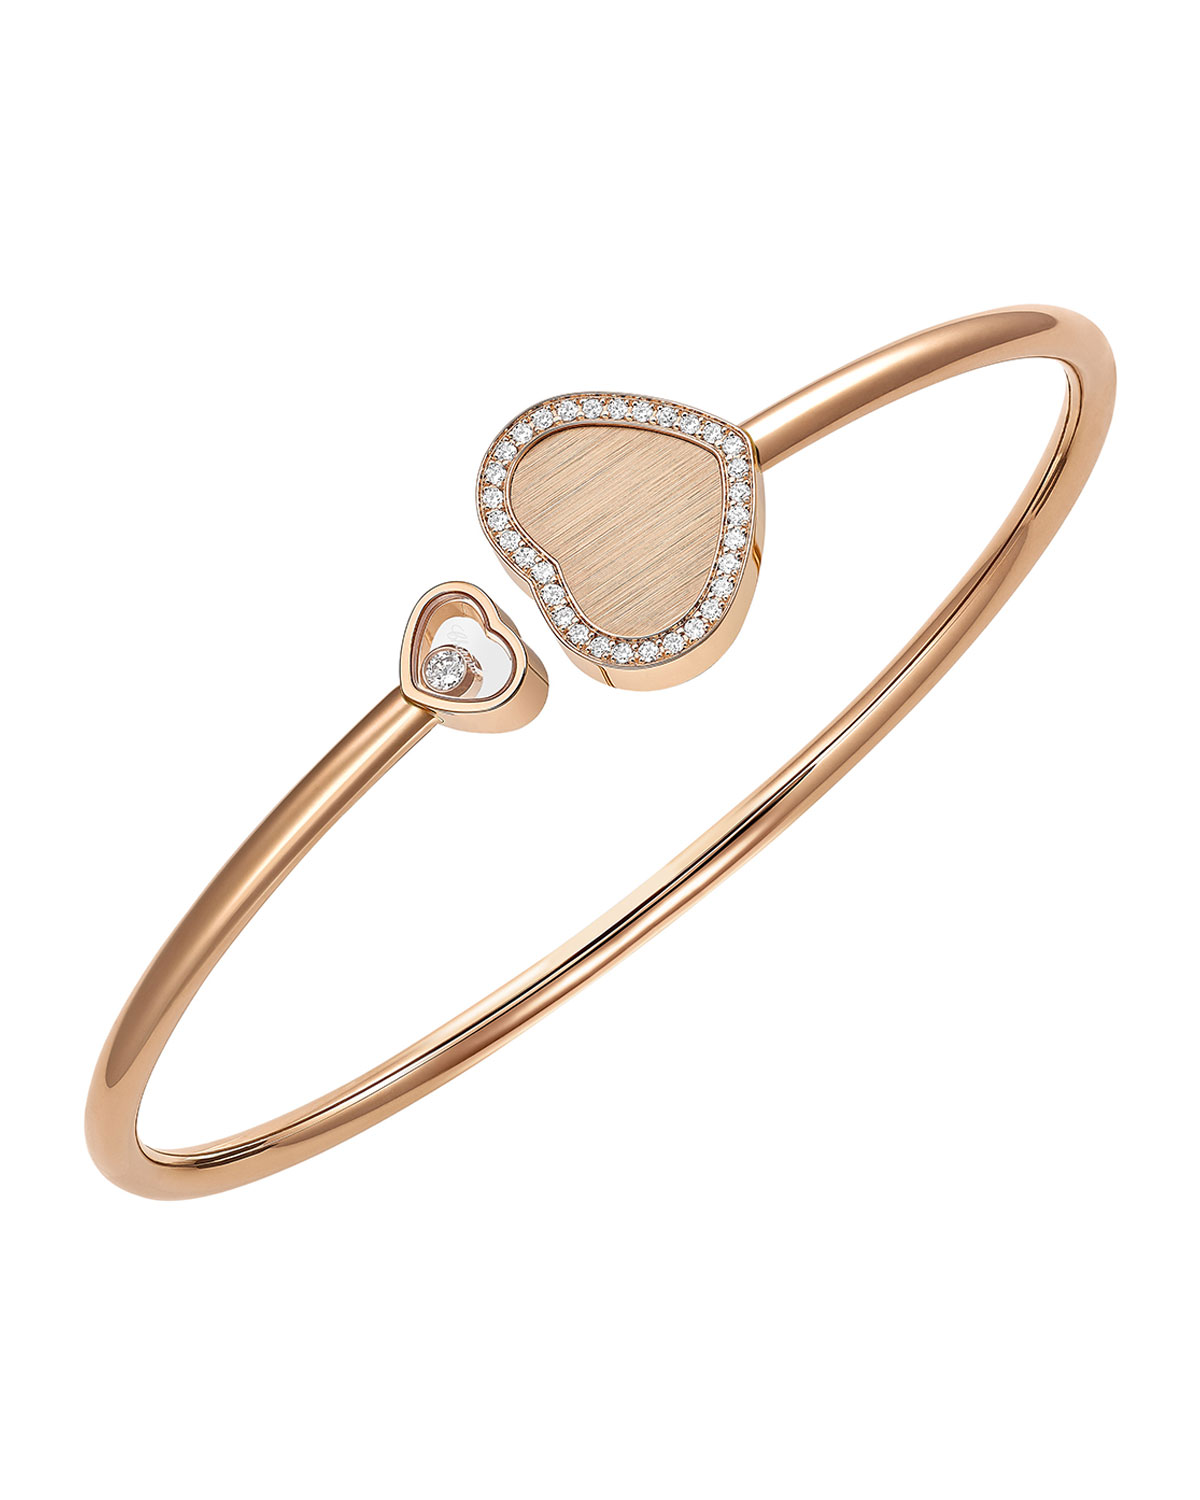 Happy Hearts 18k Rose Gold Split Bangle with Diamond and Pave